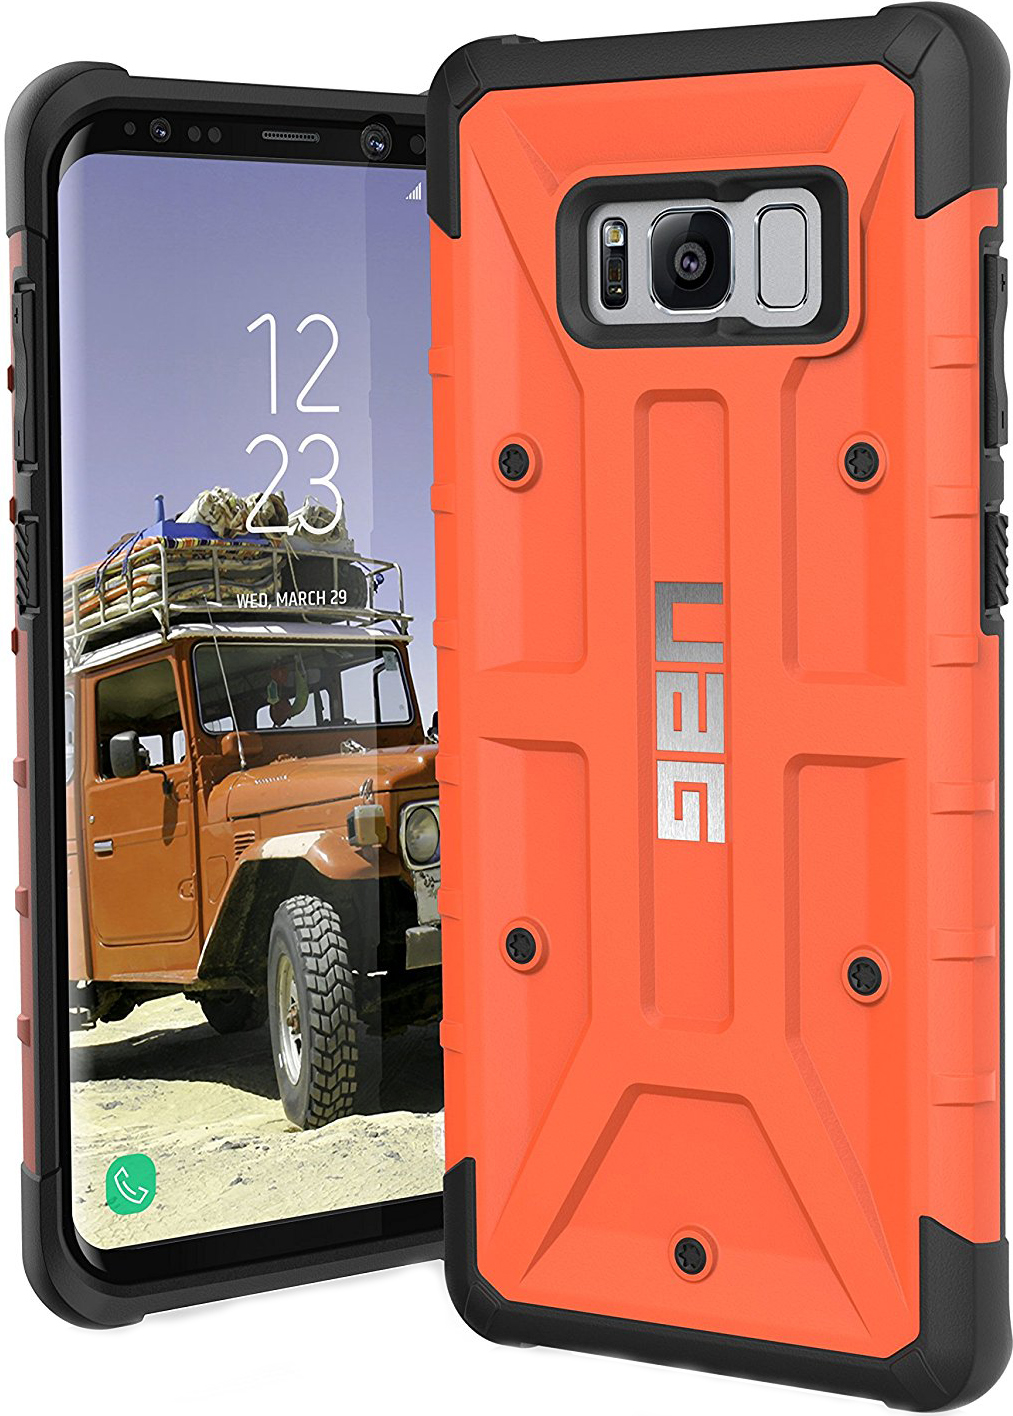 uag-galaxy-s8-case.jpg